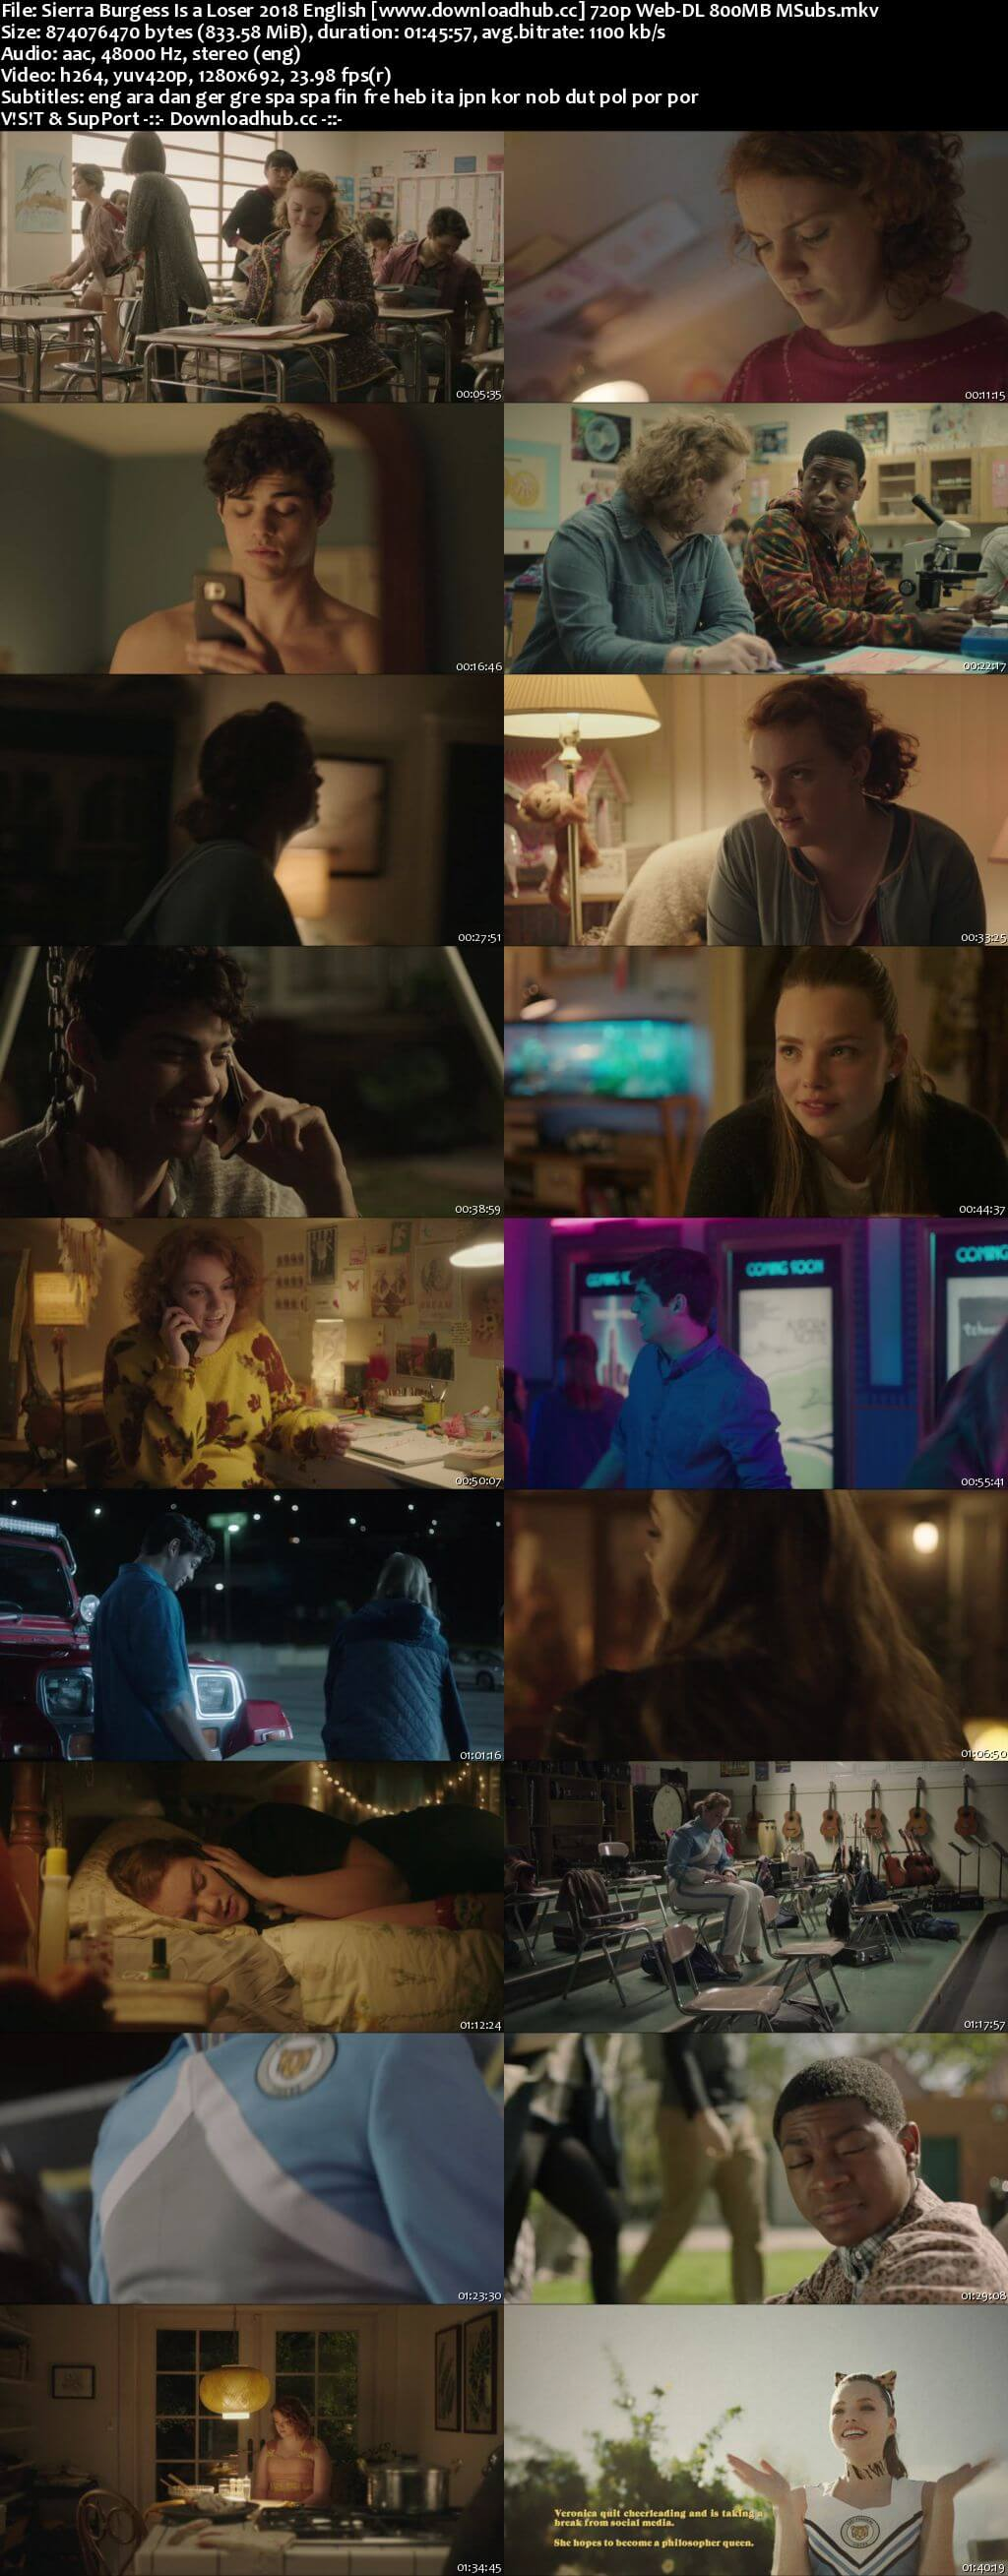 Sierra Burgess Is a Loser 2018 English 720p Web-DL 800MB MSubs